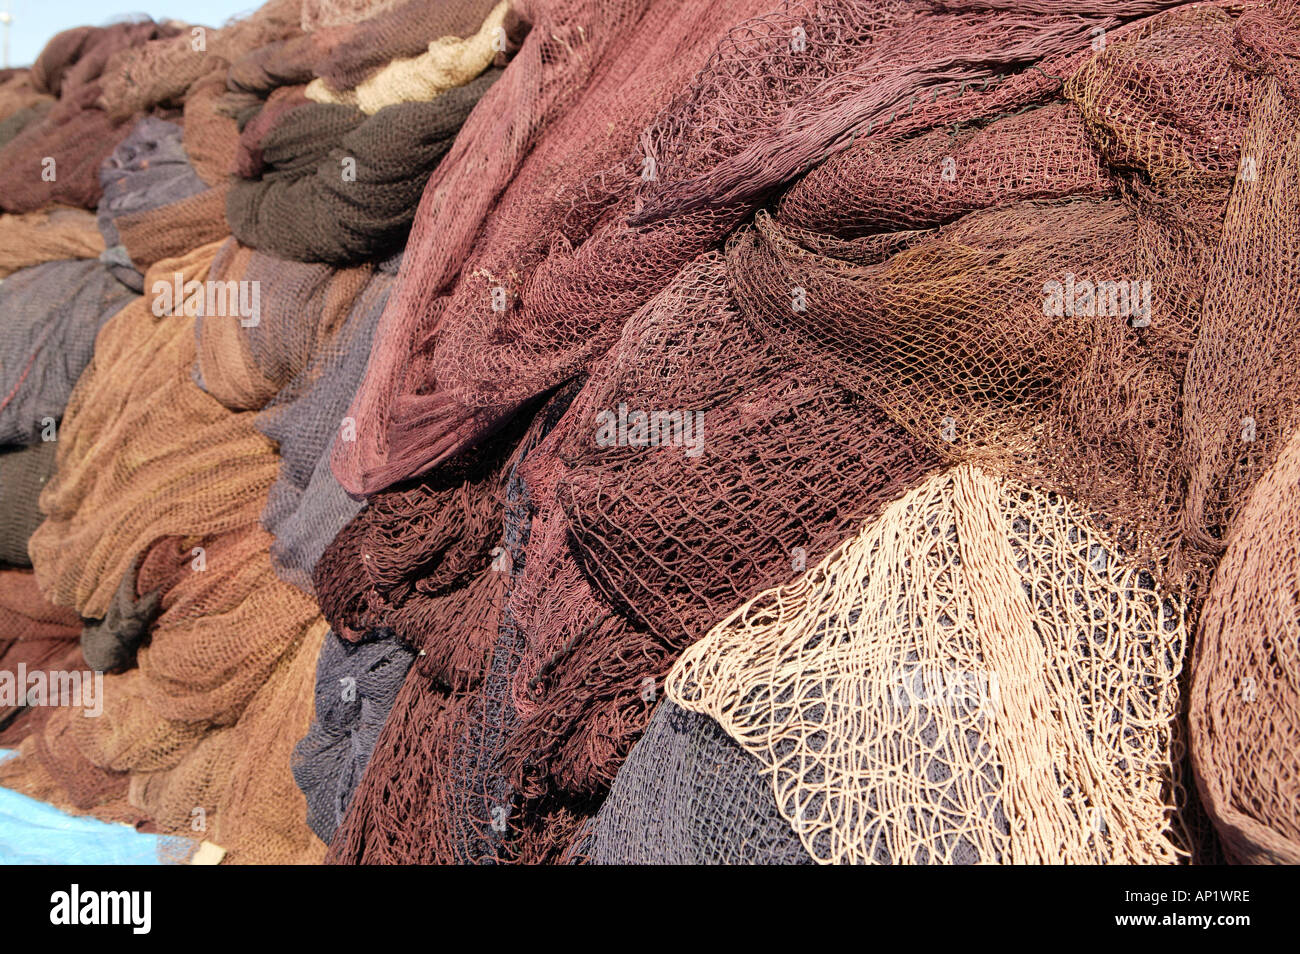 netting, net, mesh, fish, work, fishes with nets. networks, maritime ...